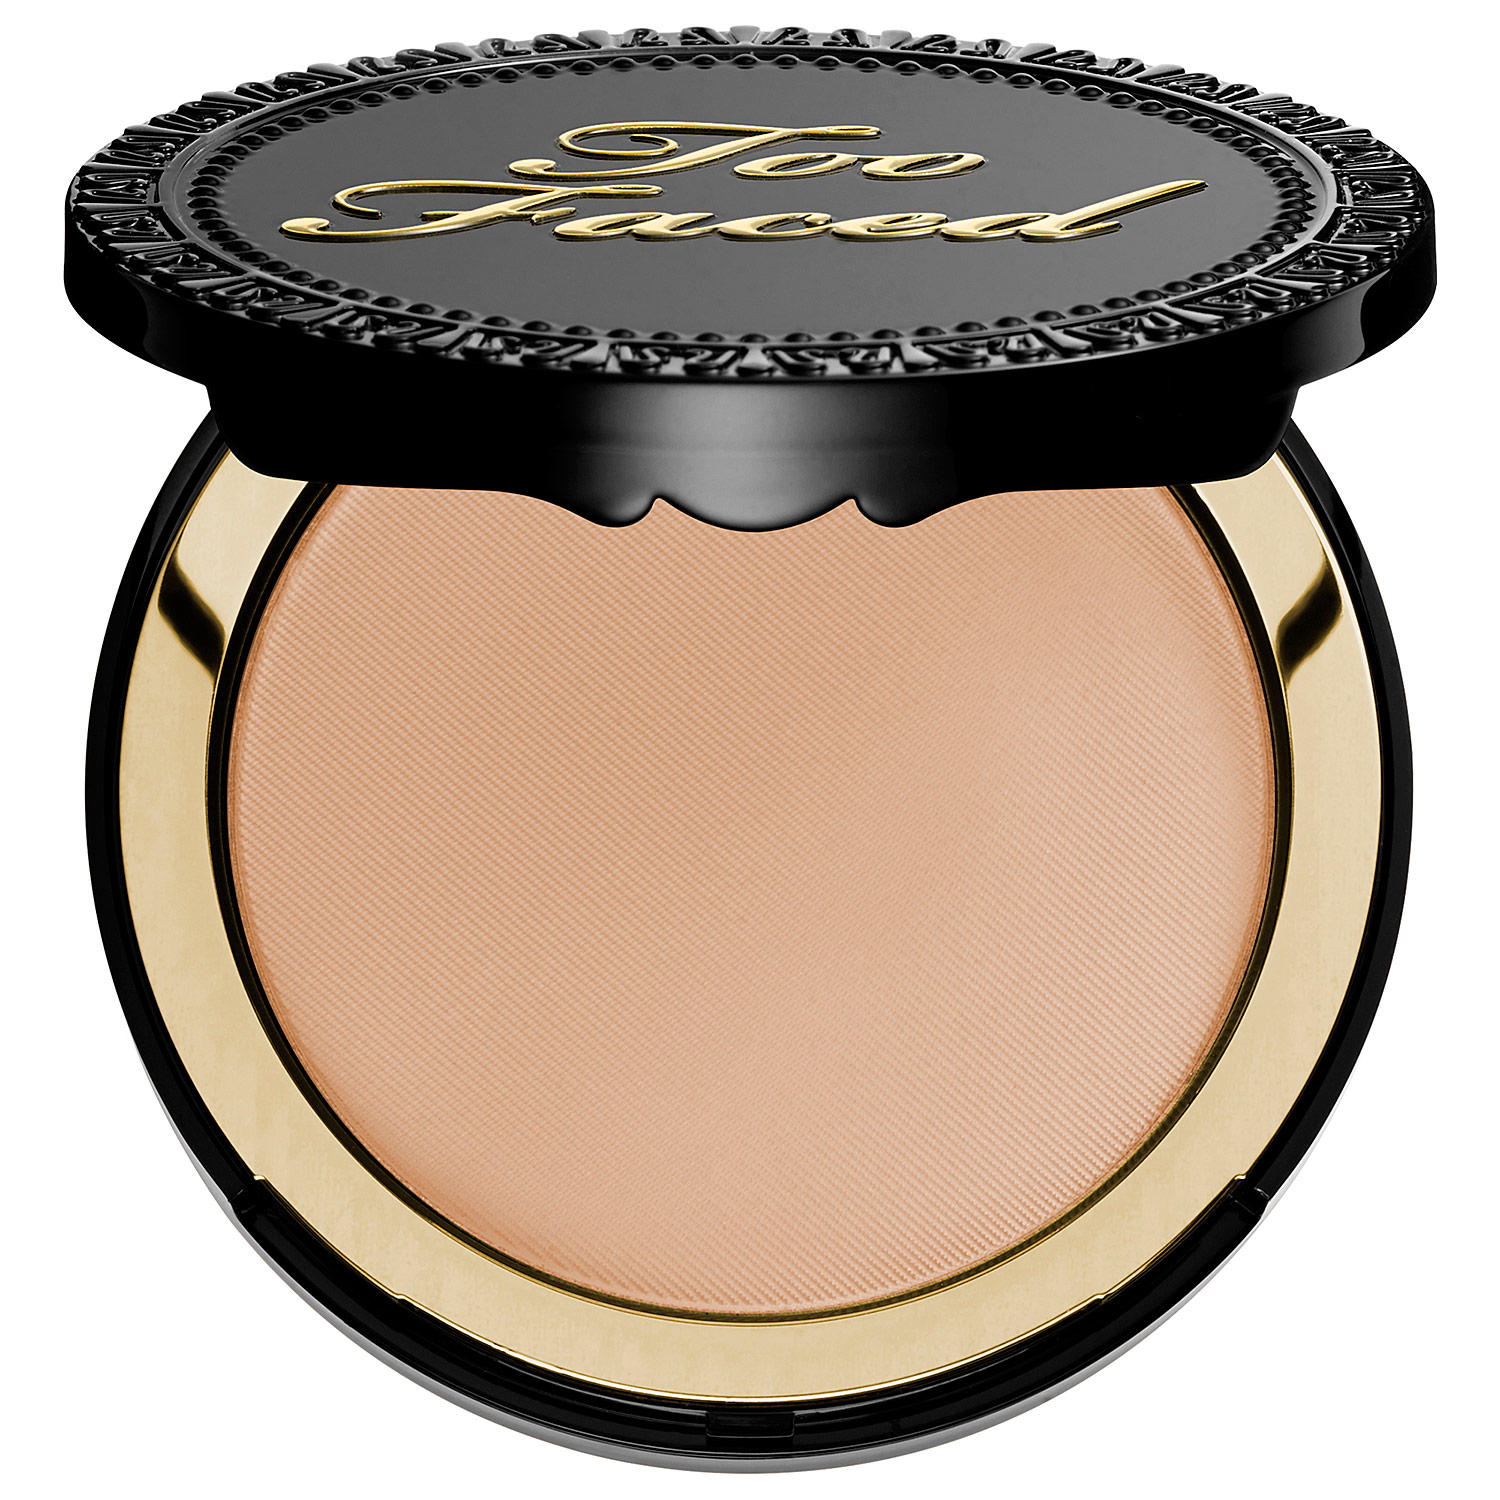 Too Faced Cocoa Powder Foundation Light